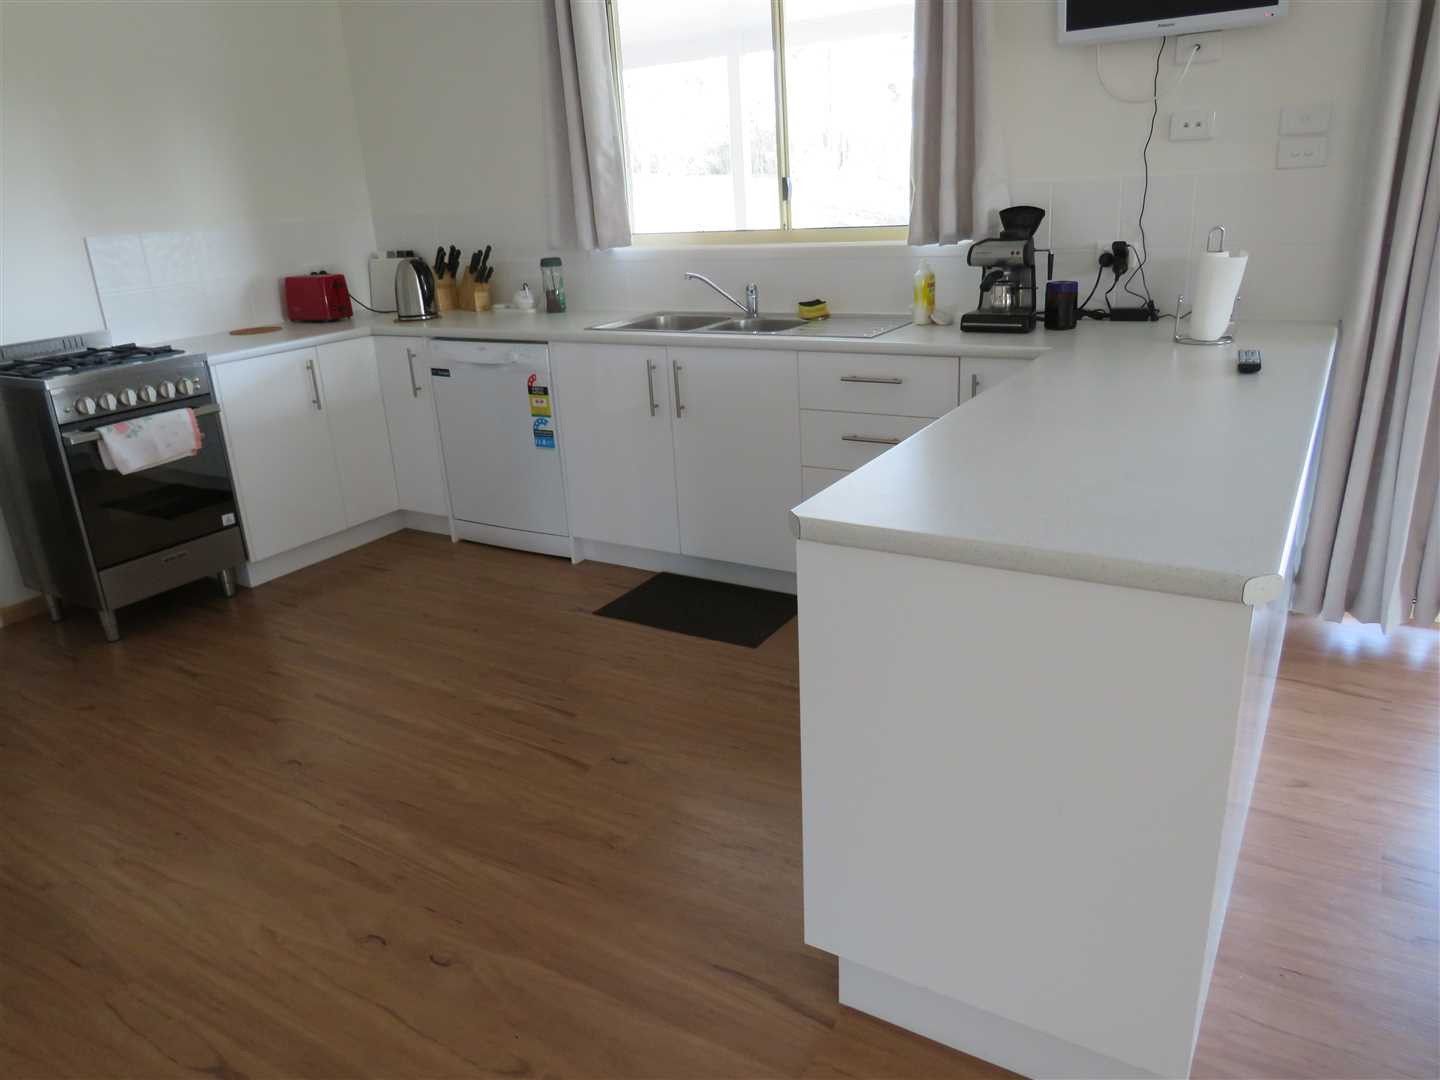 modern kitchen,under sink scraps,corner fold out shelves,dishwasher,double sink with flick mixer,lino floor covering